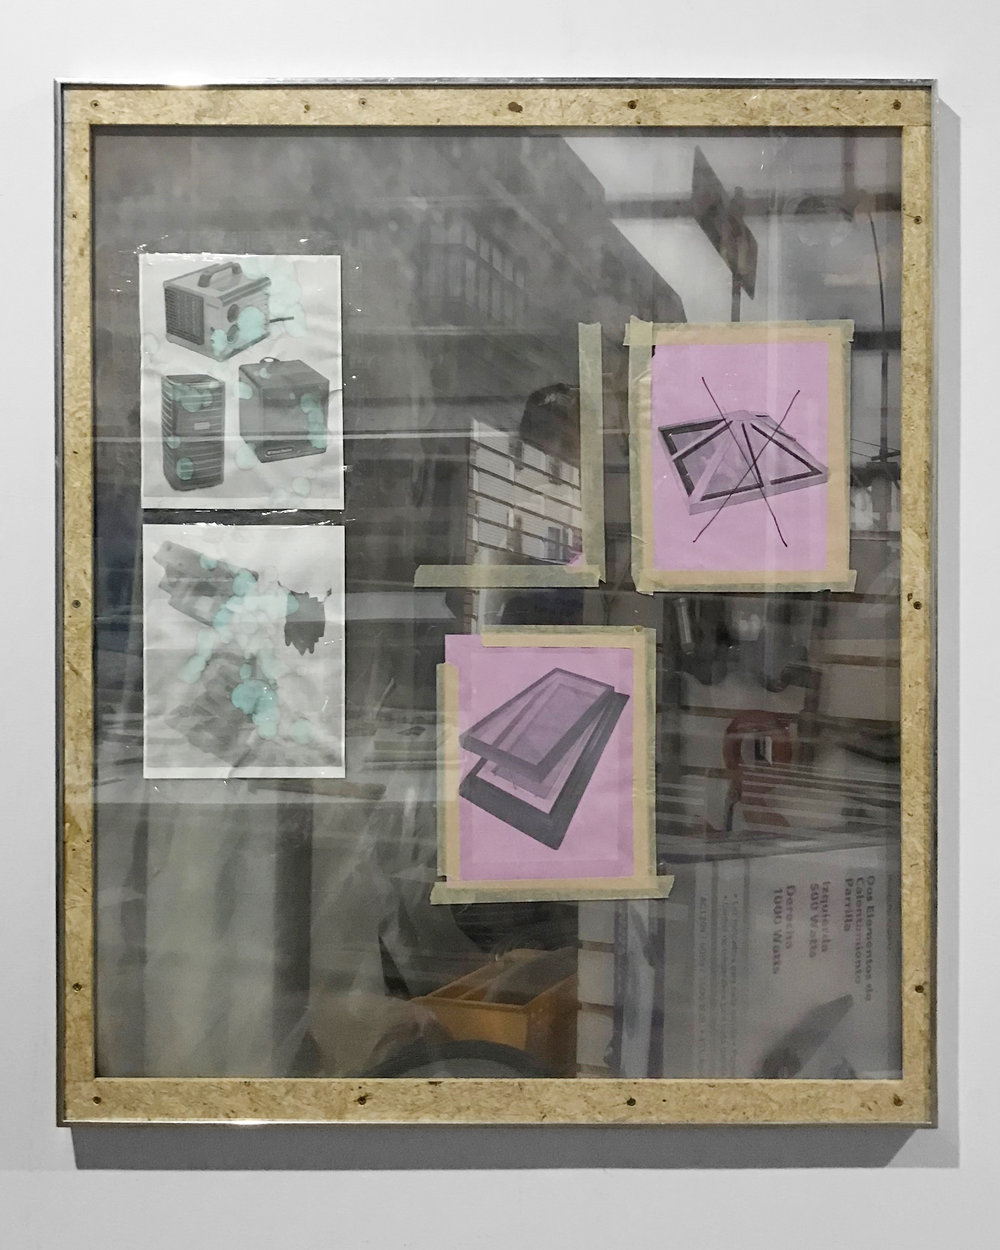 Untitled, 2017, UV print on acrylic, inkjet prints, tape, particle board, aluminum frame, hardware